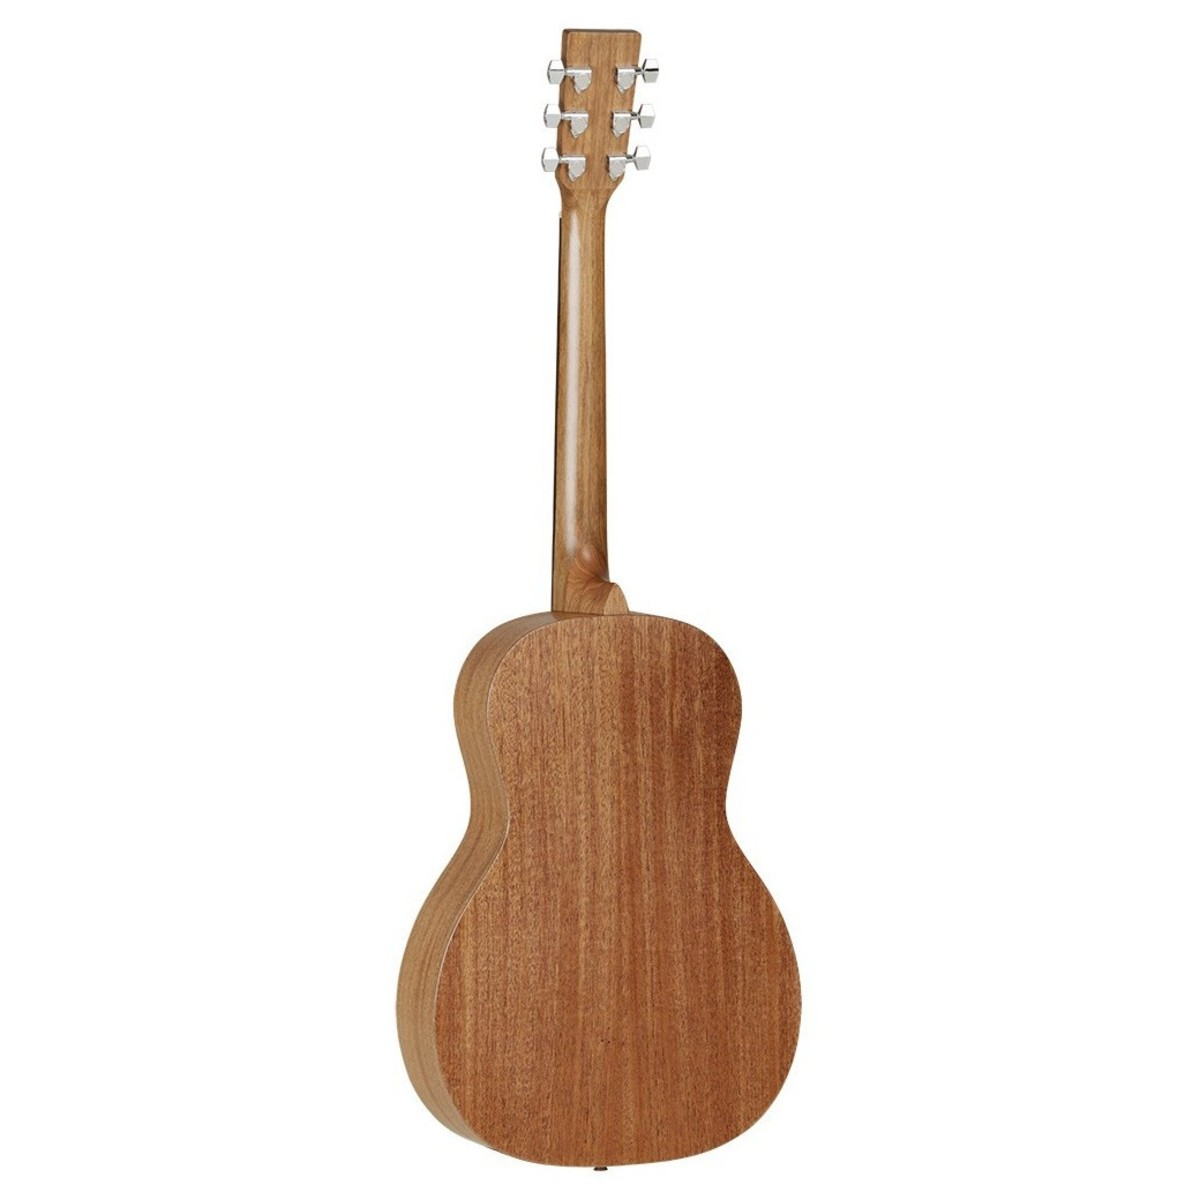 Tanglewood tw3 e lh winterleaf parlor size electro for The tanglewood